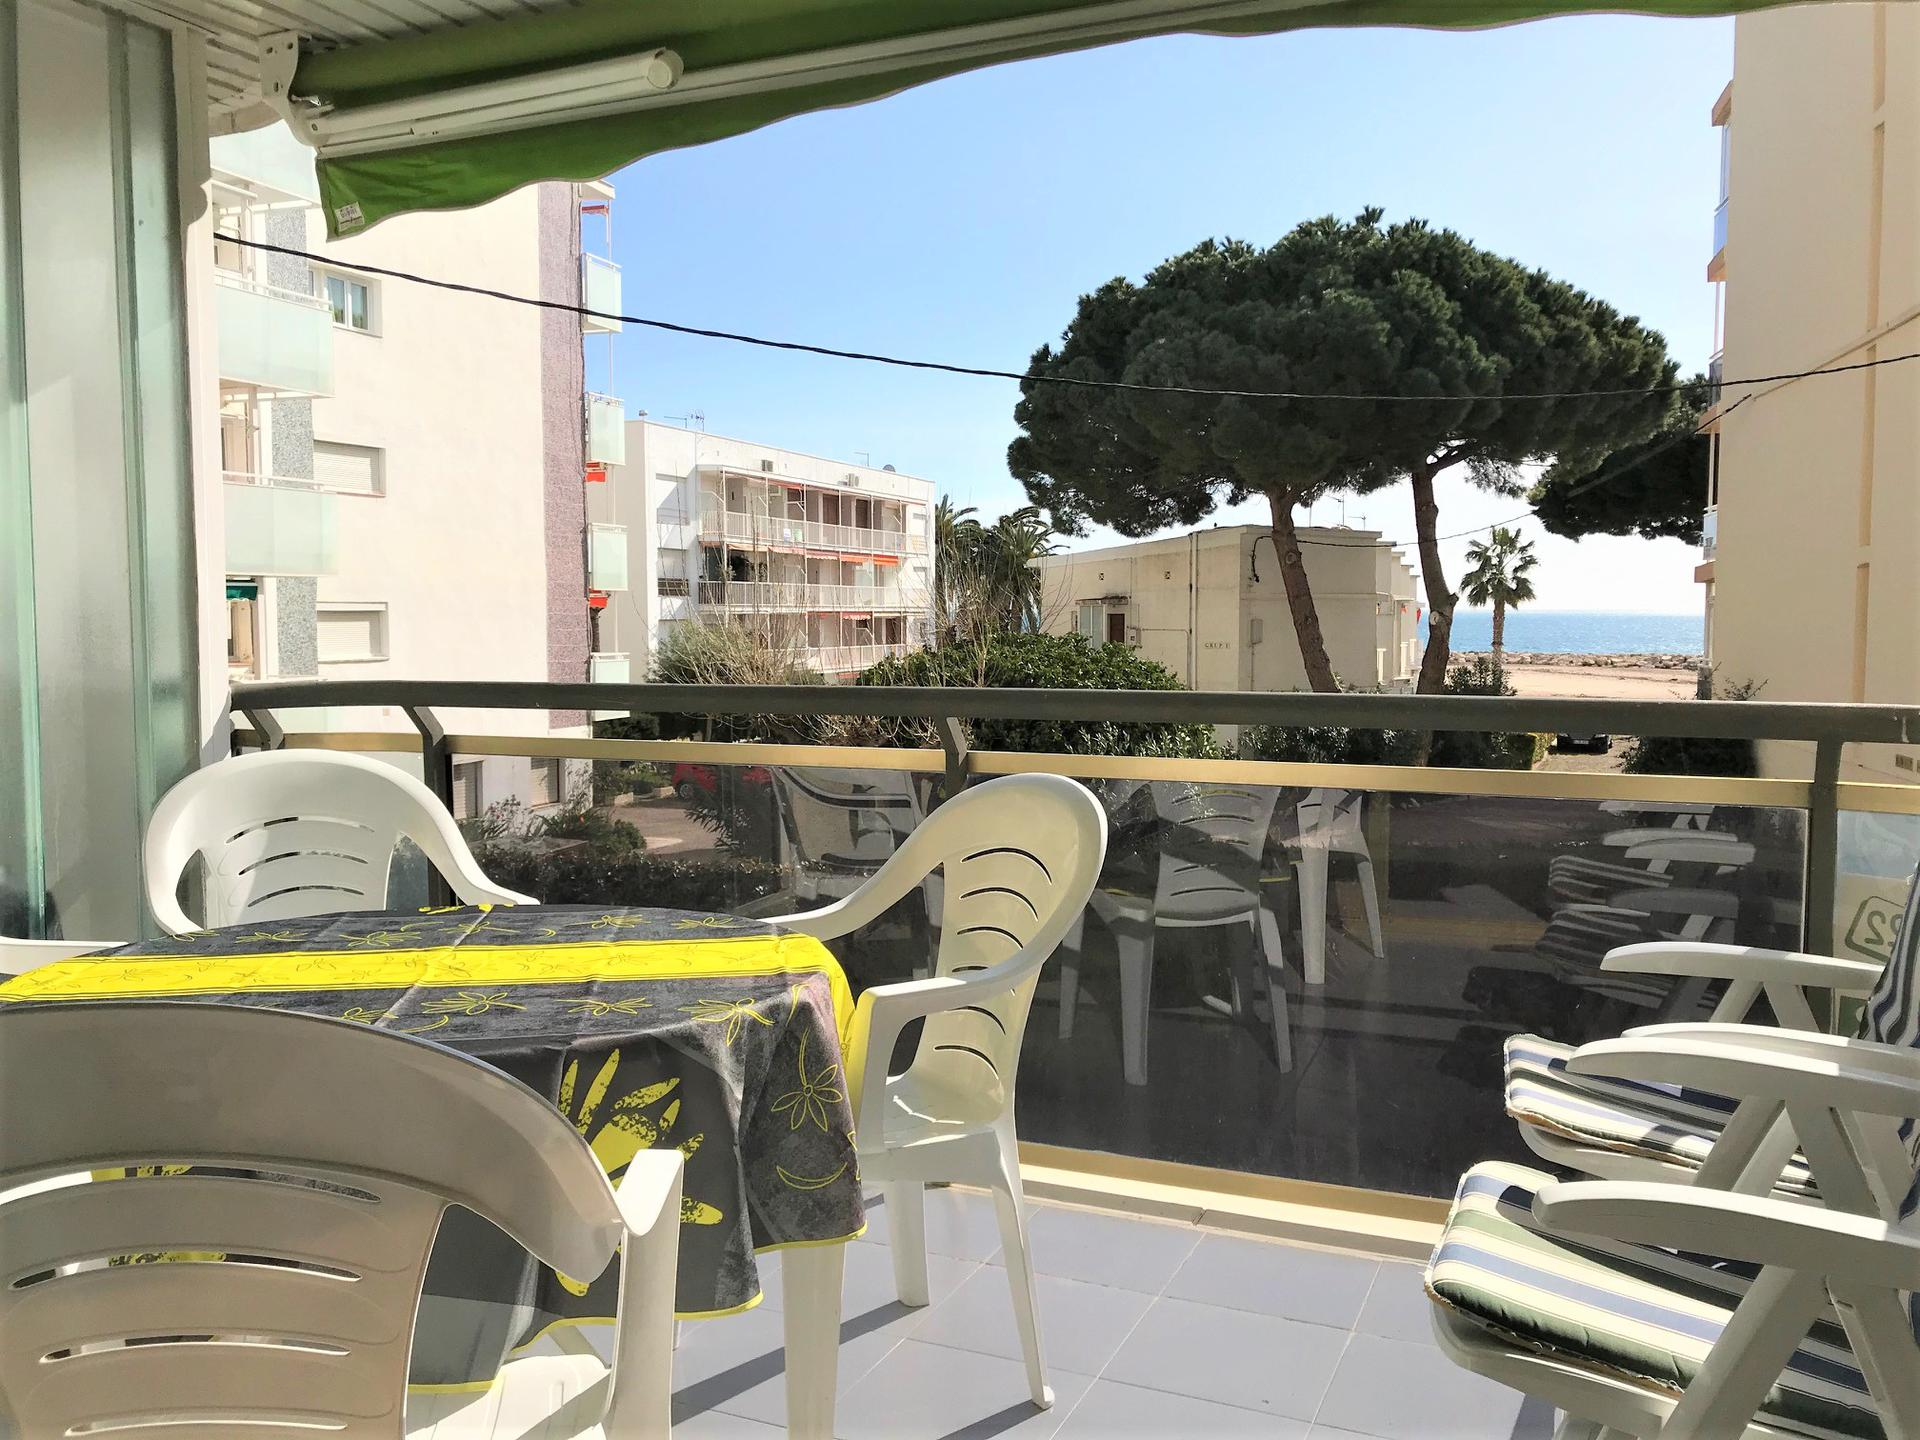 LOCATION VACANCES Appartement Cambrils